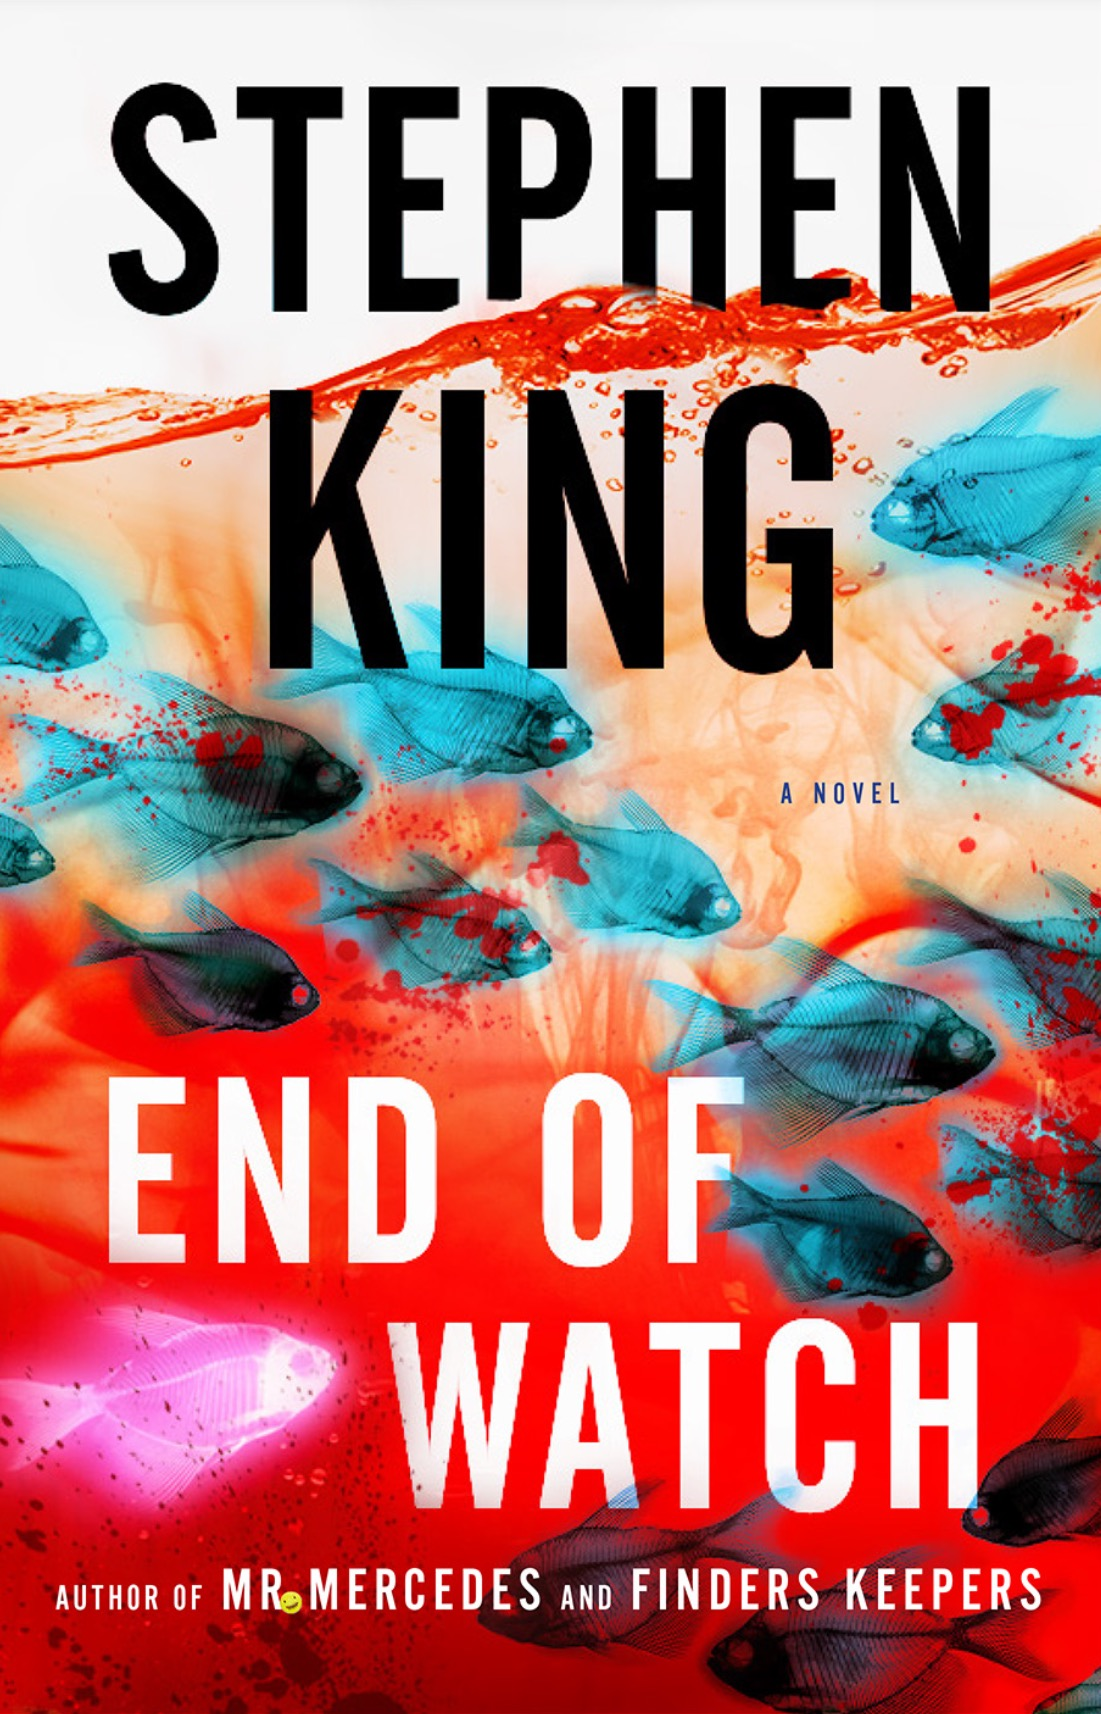 The charnel house news archive it looks like the final part of the bill hodges trilogy end of watch will be released on june 7 2016 currently kings only scheduled book for next fandeluxe Choice Image